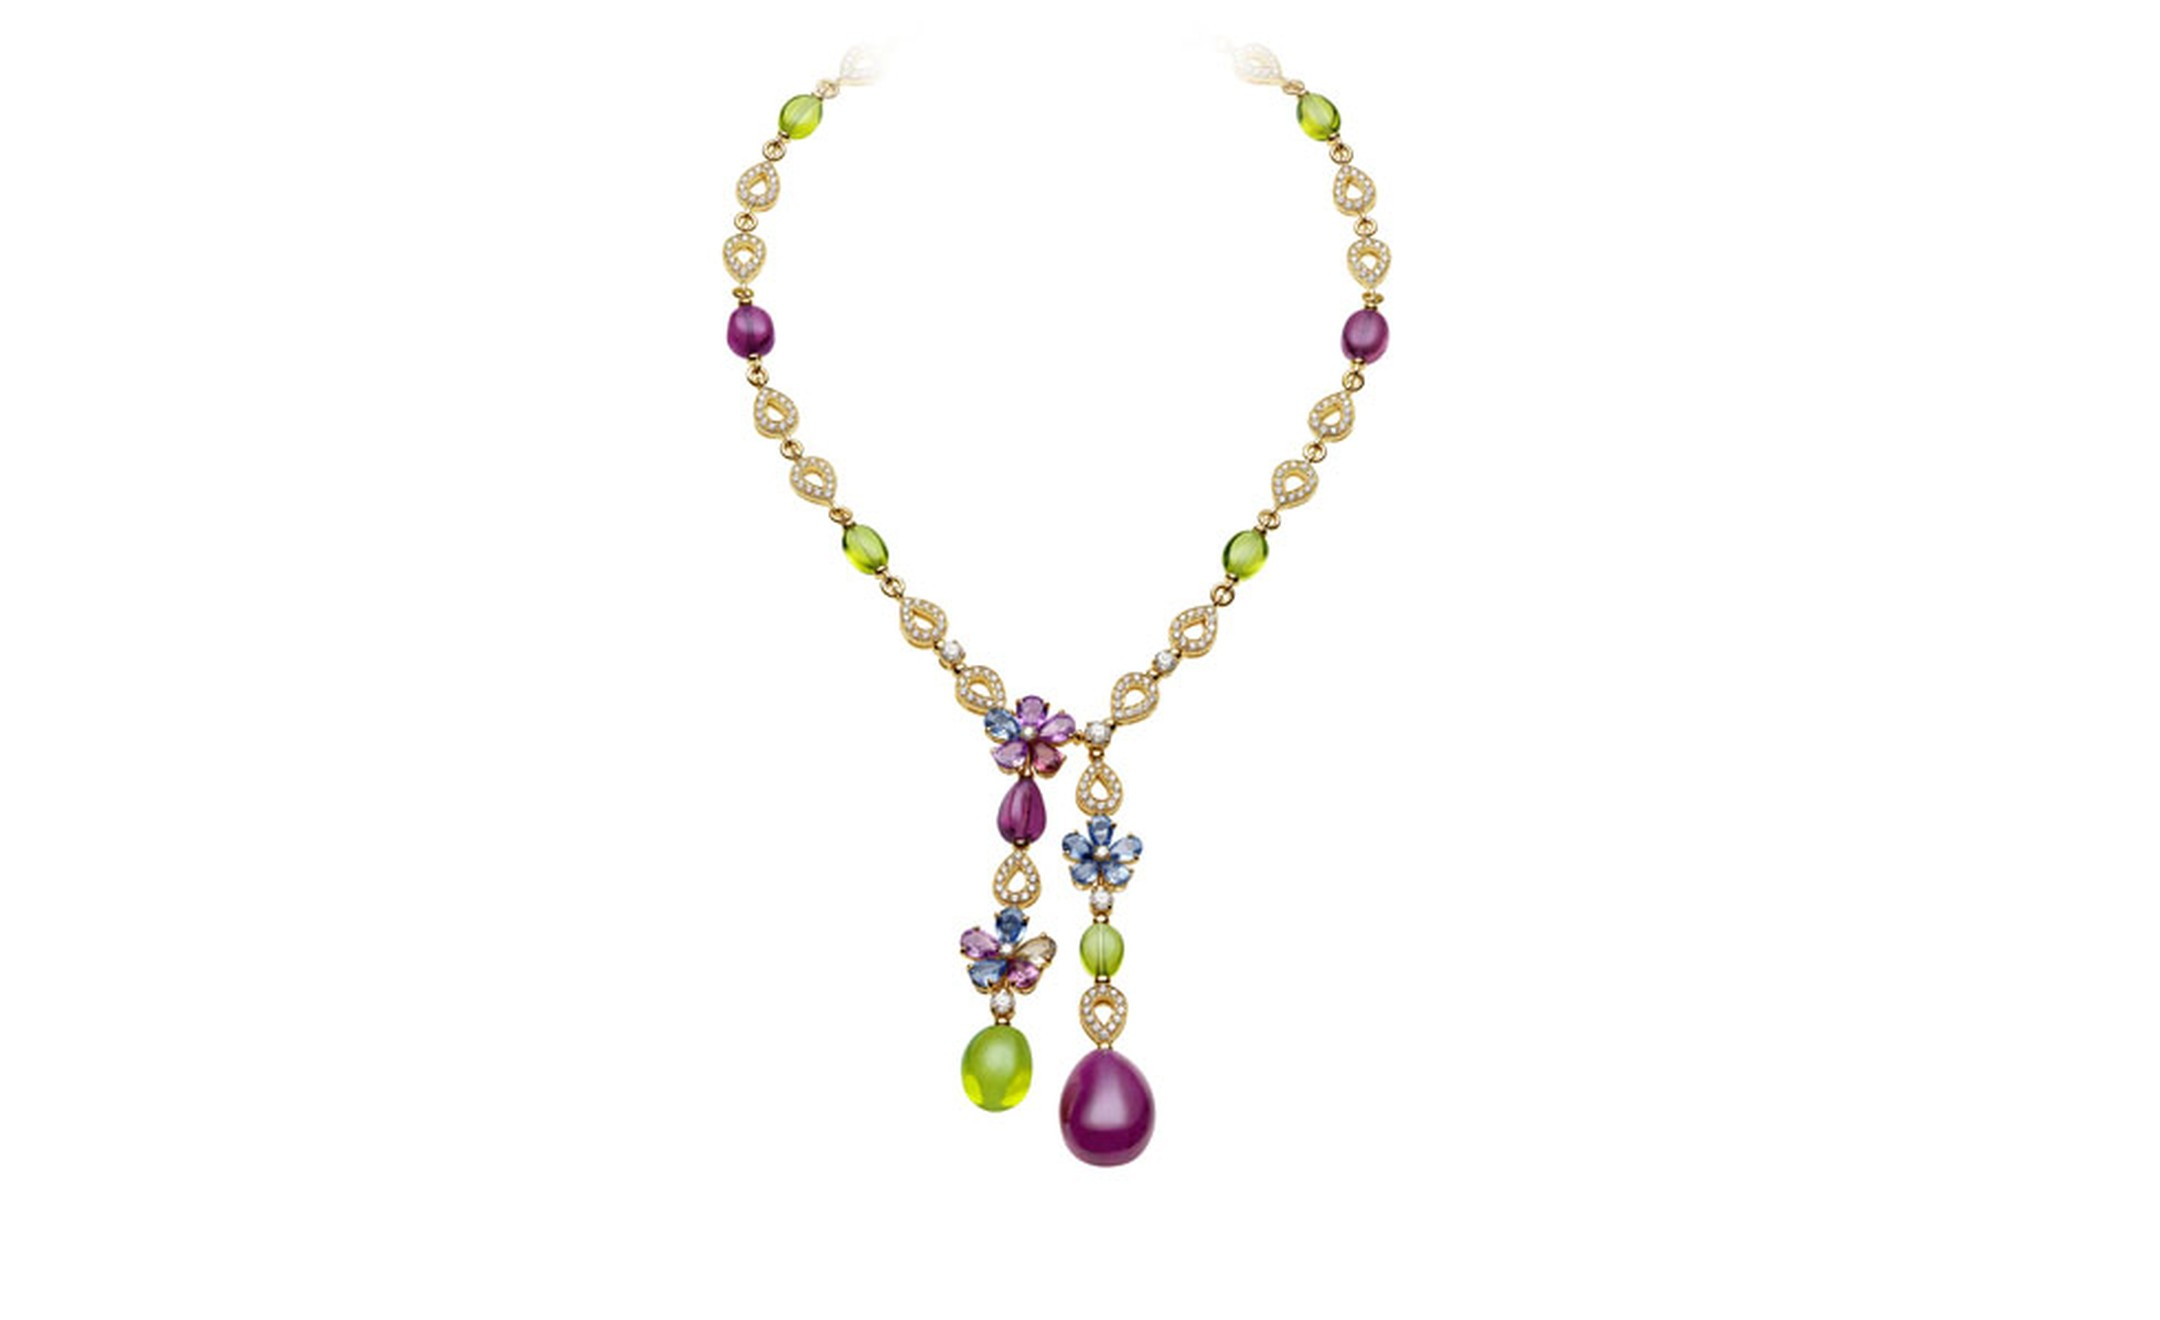 Bulgari. Mediterranean Eden yellow gold necklace mounting fancy sapphires peridots, rubellites, diamonds and pavé diamonds. Price from £39.600,00